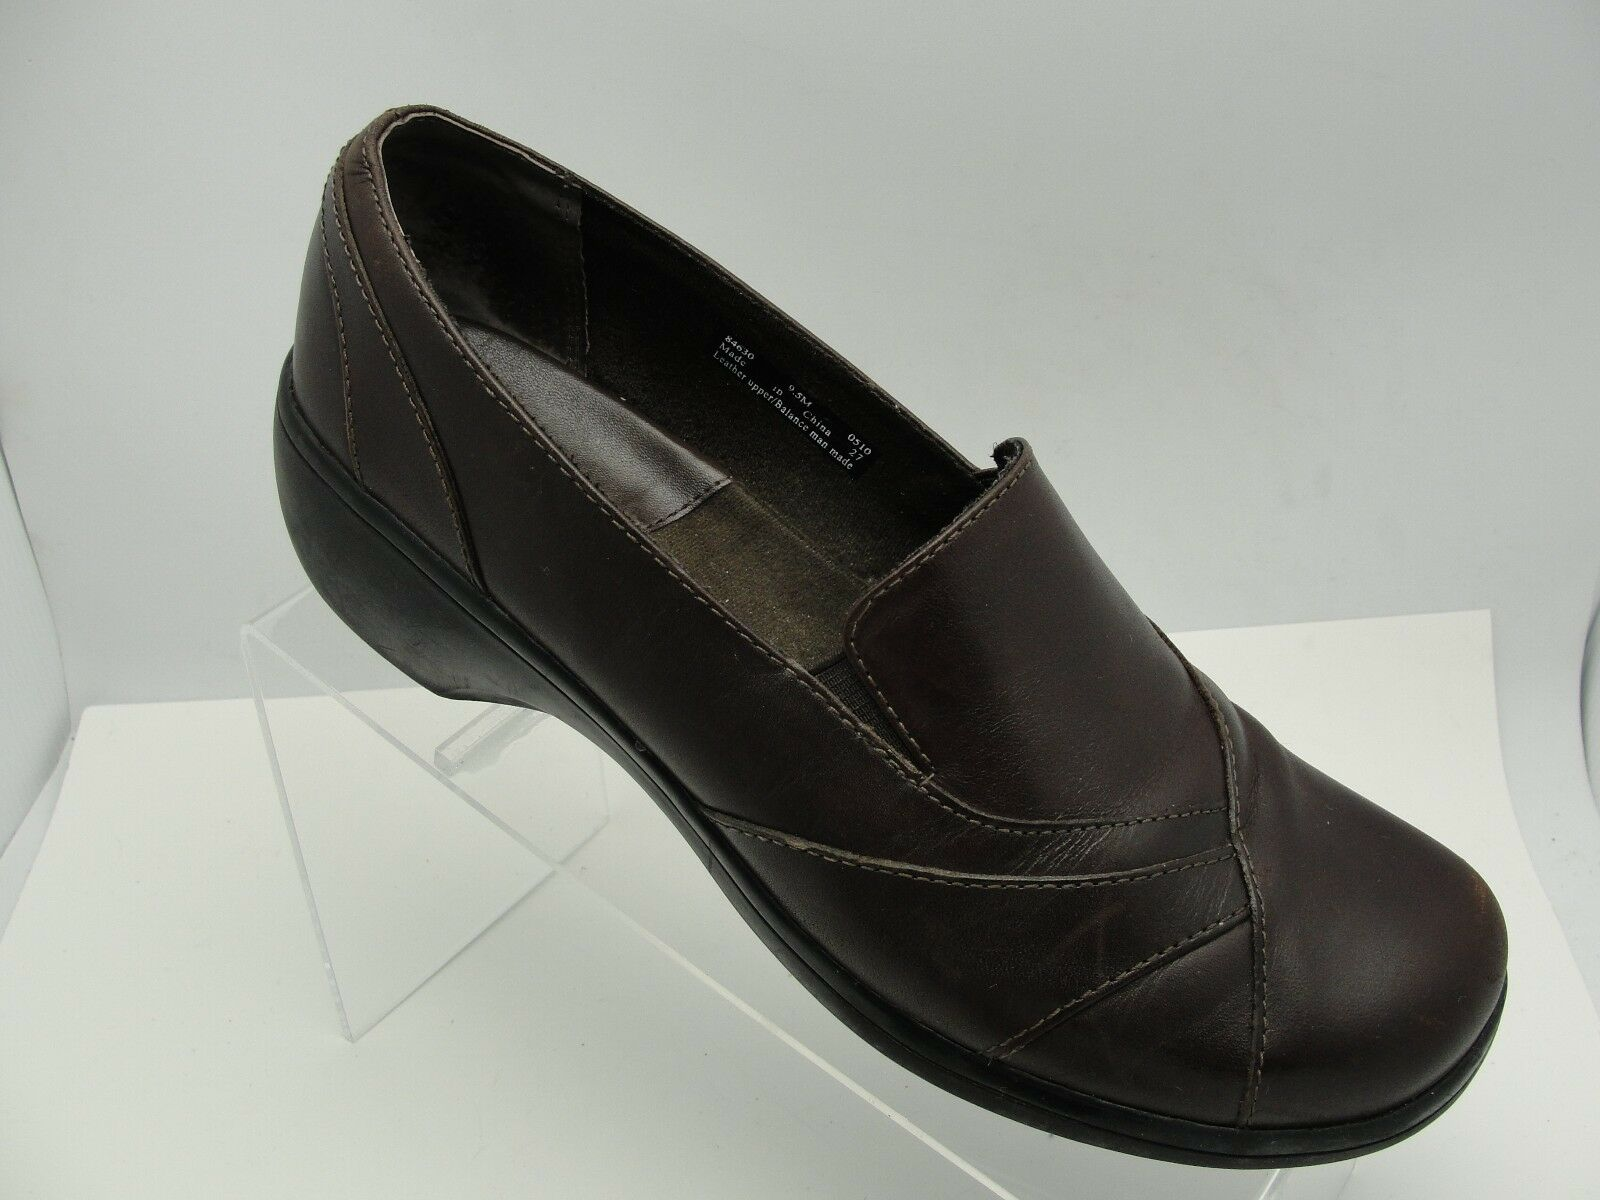 Clarks Clarks Clarks marrón mujer Slip on Leather Loafer zapatos 2  Wedge Heel Talla 9.5 M  60% de descuento